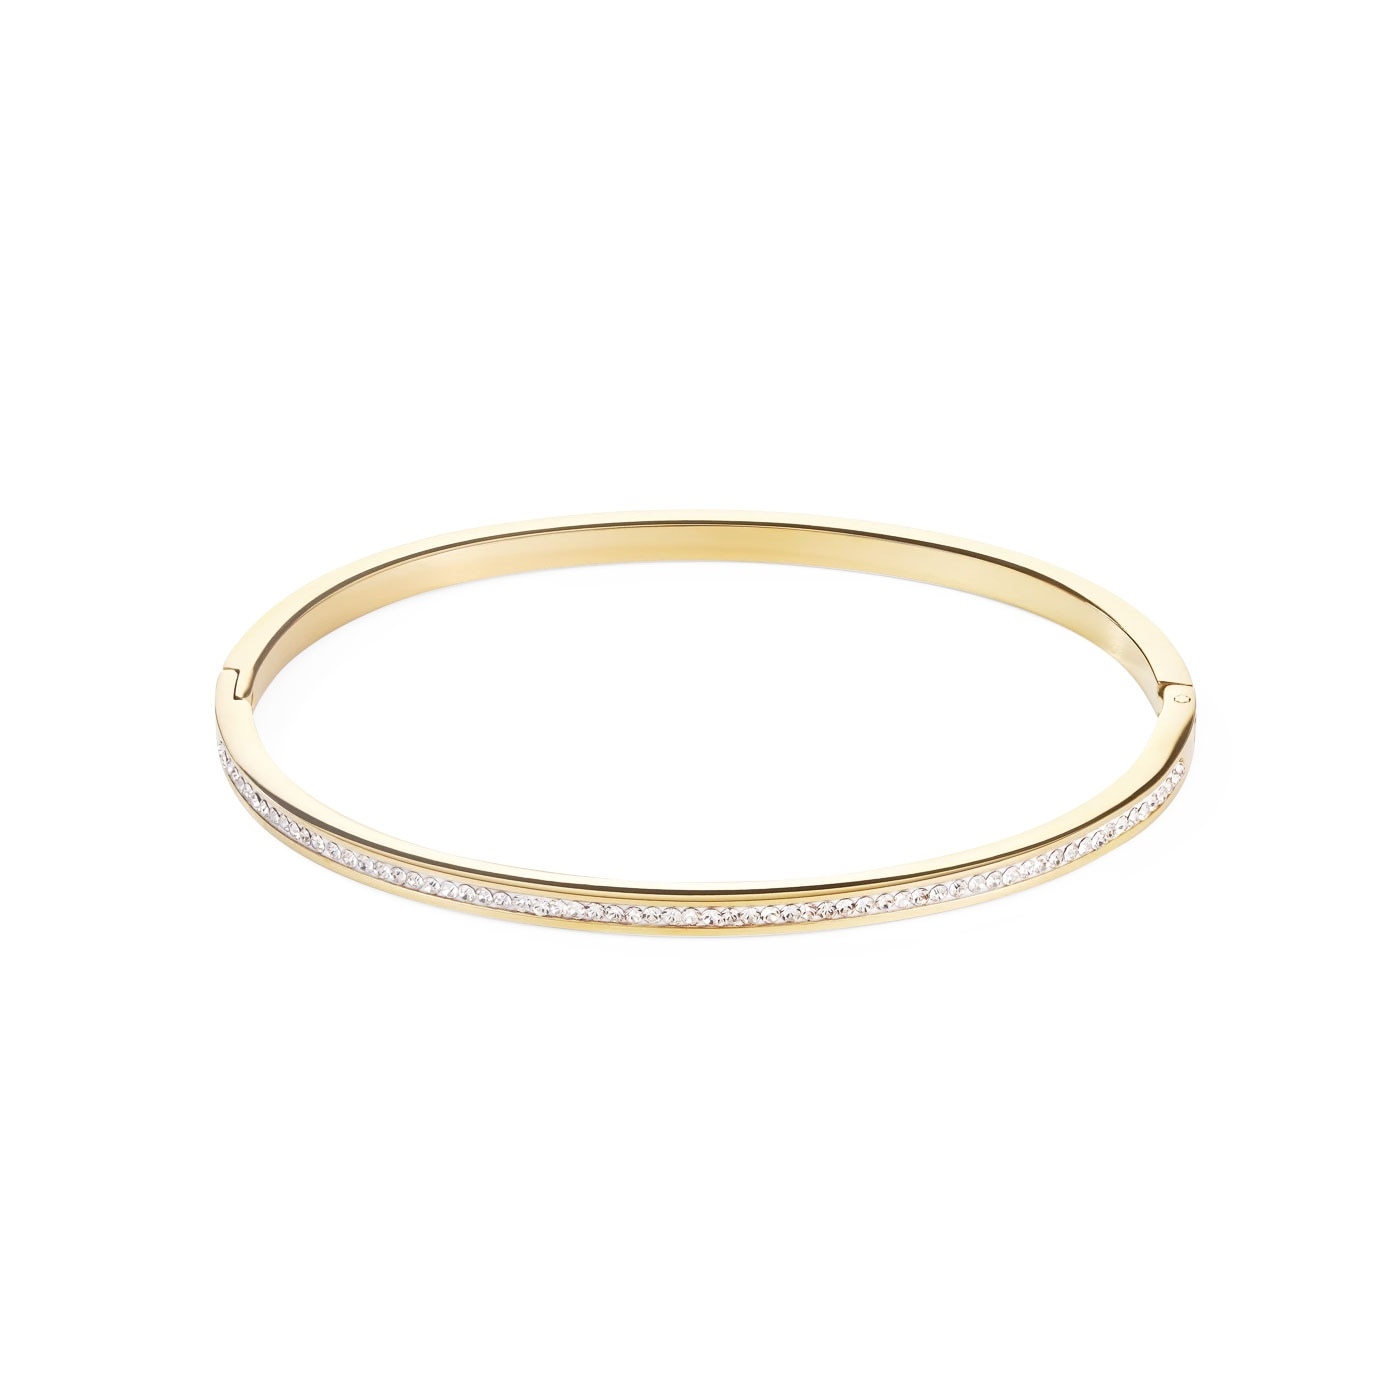 Bangle stainless steel gold & crystals pavé crystal